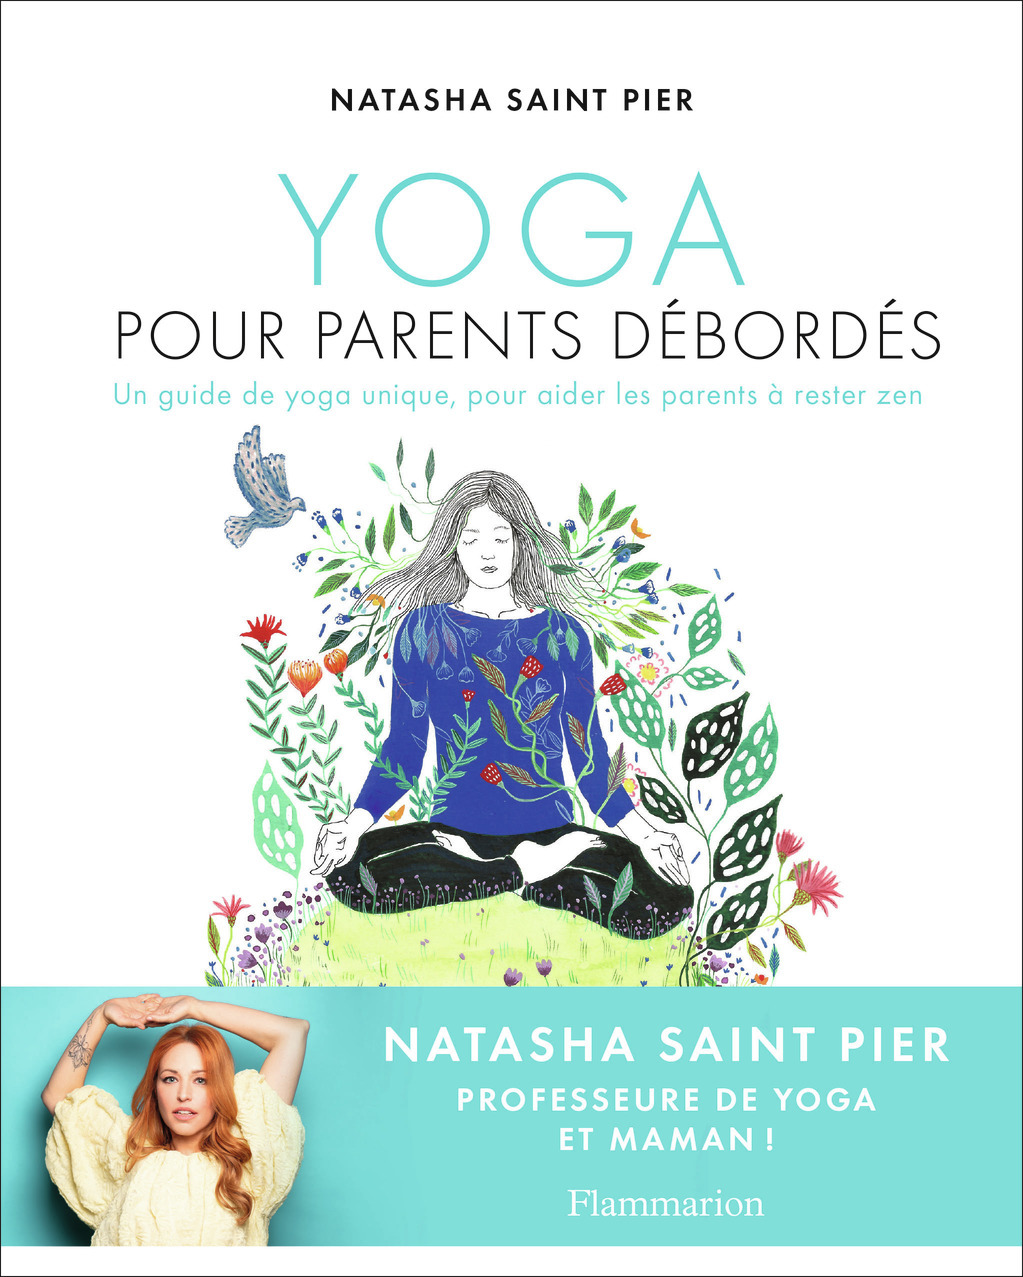 YOGA POUR PARENTS DEBORDES - UN GUIDE DE YOGA UNIQUE, POUR AIDER LES PARENTS A RESTER ZEN